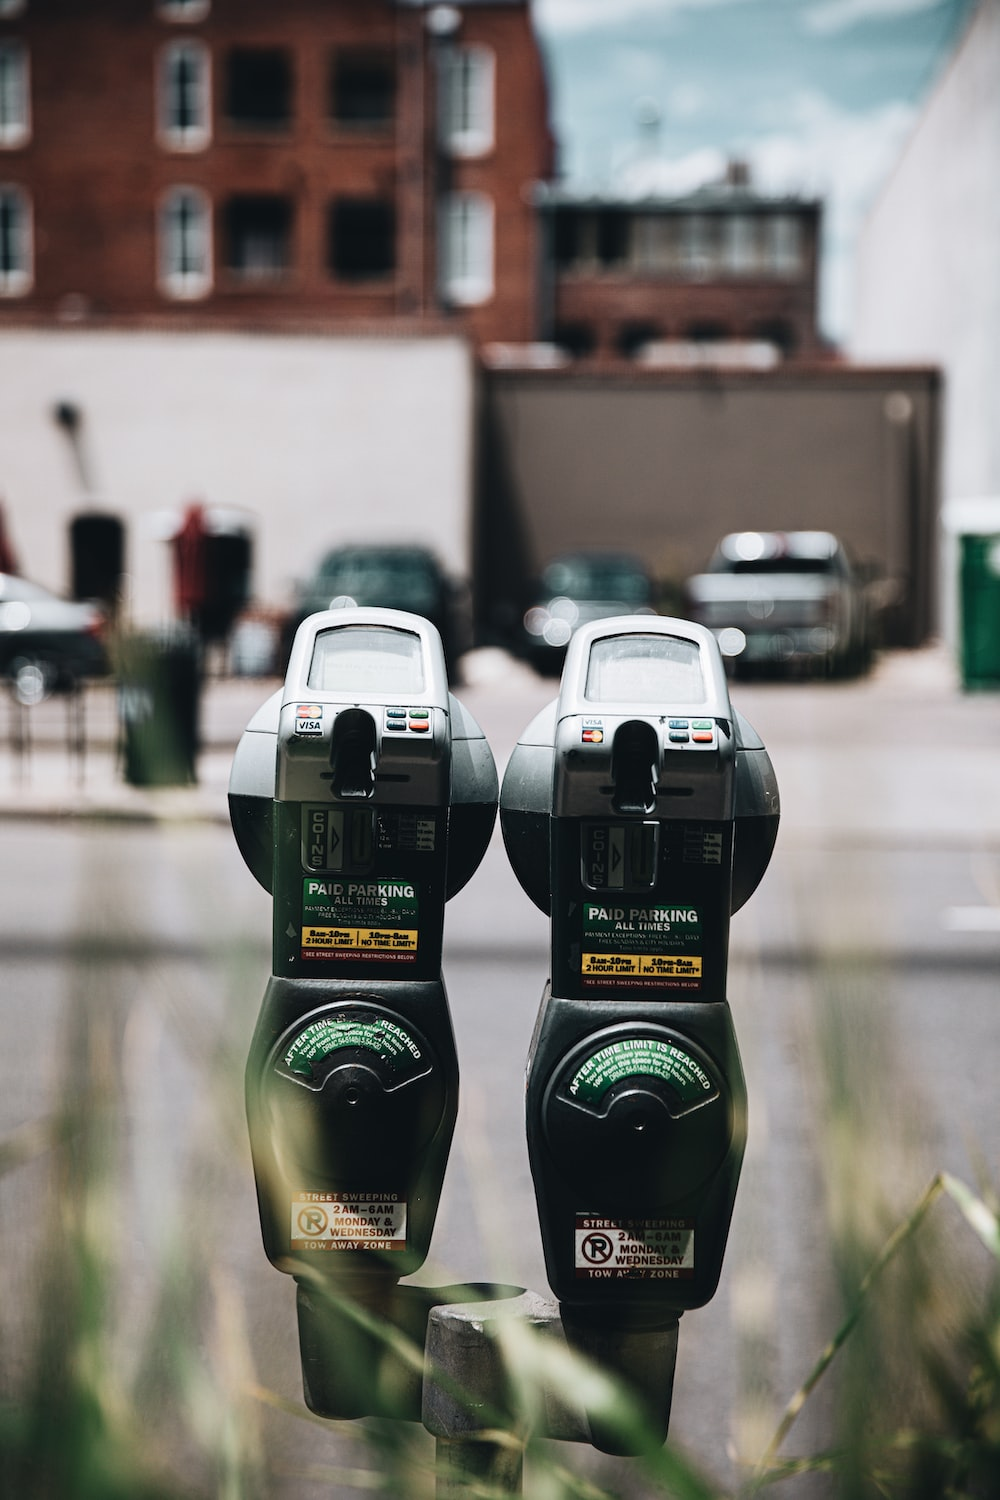 2 green and black parking meter